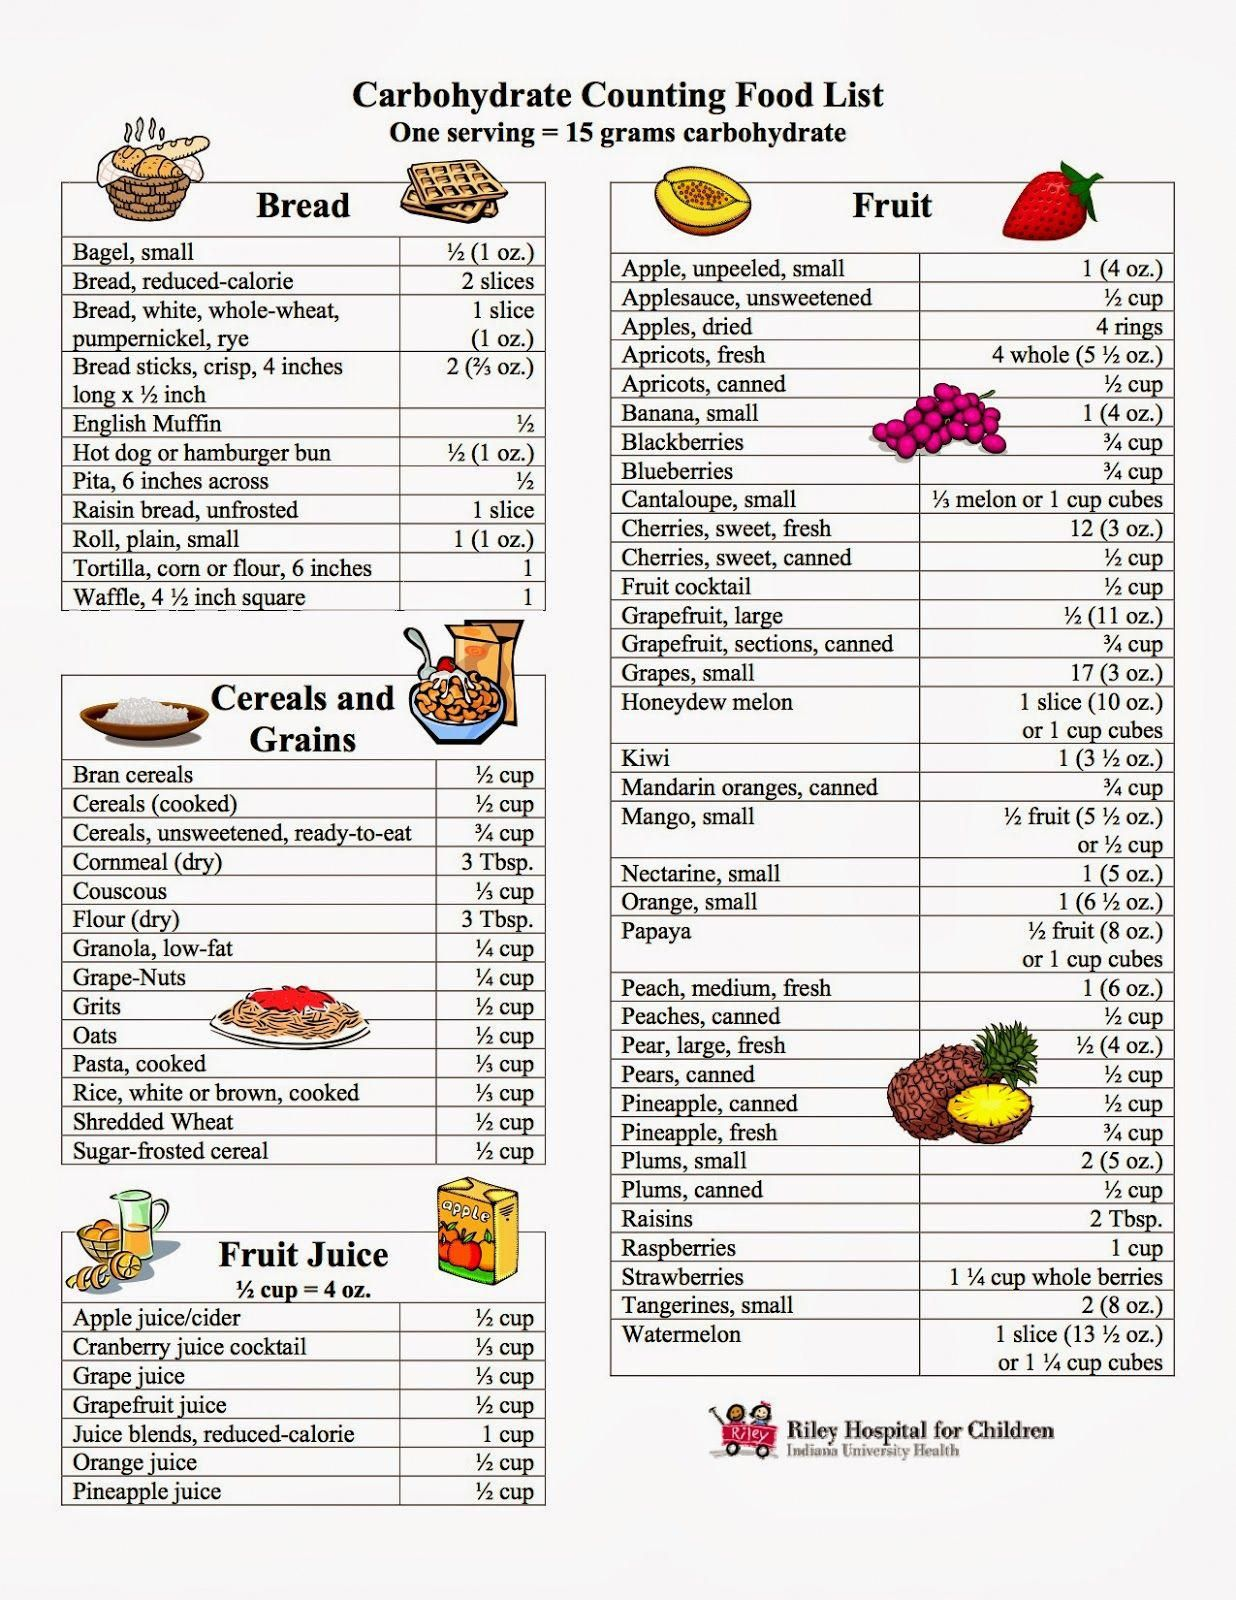 Image result for carbohydrate food list chart